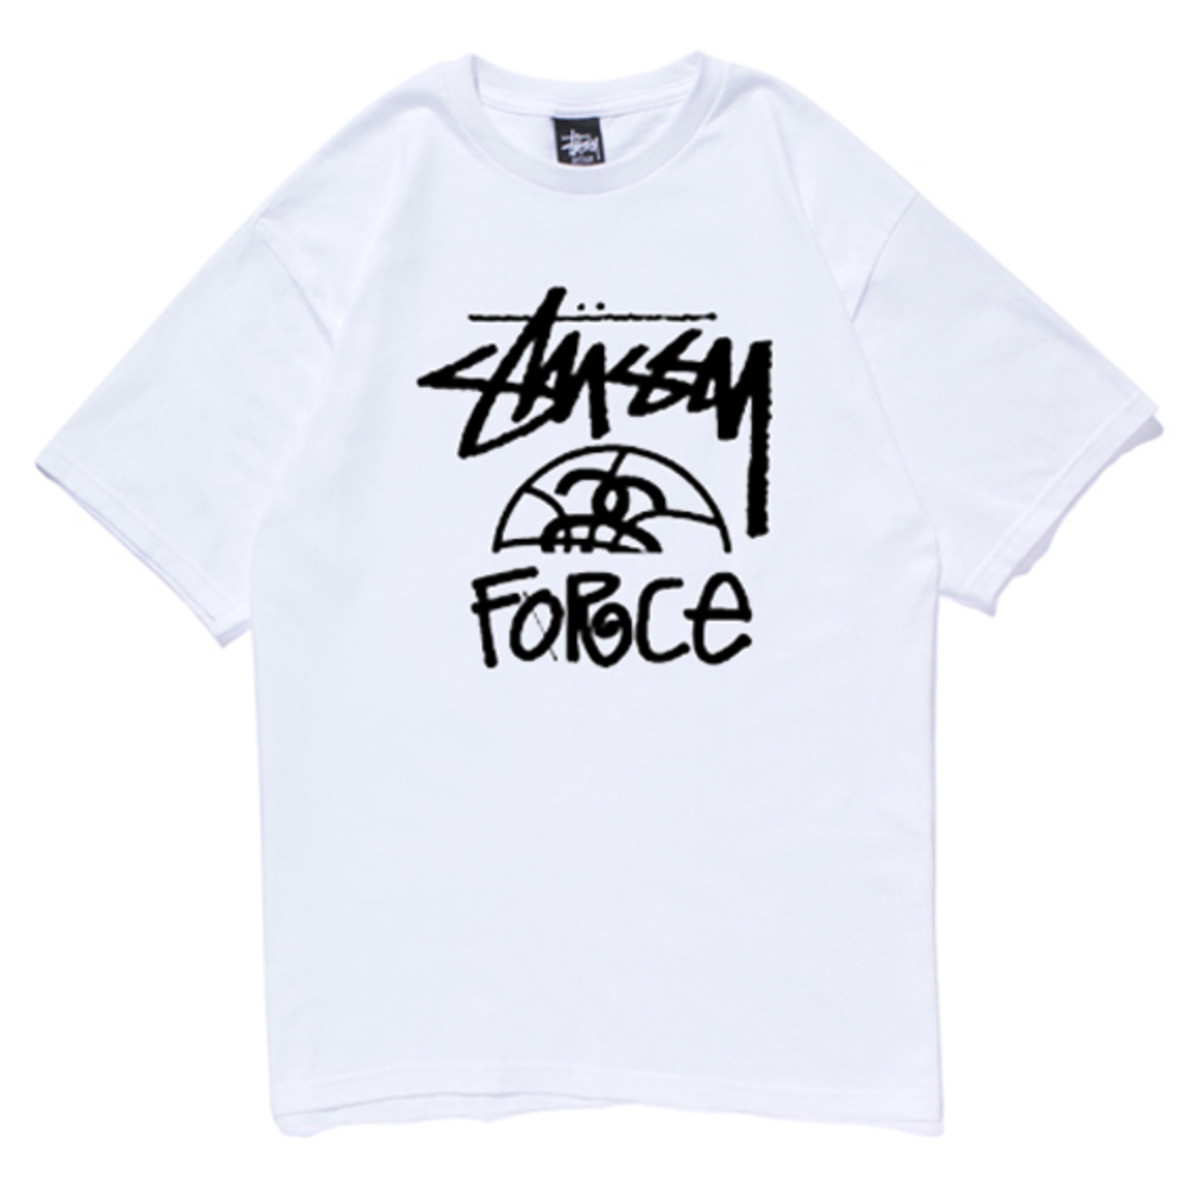 sky-force-t-shirt